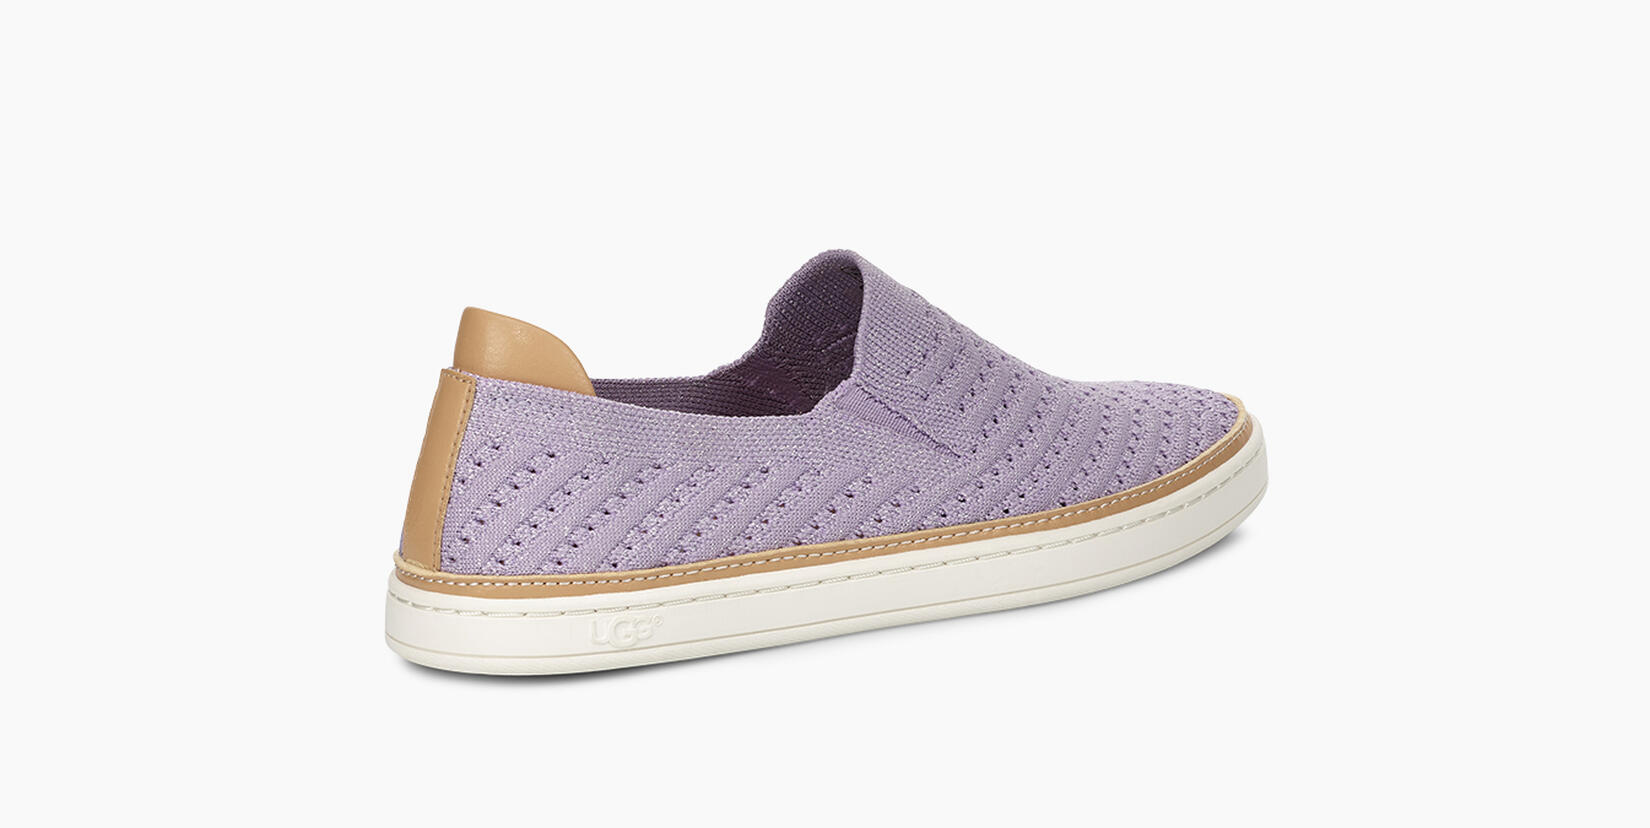 Sammy Chevron Metallic Slip On